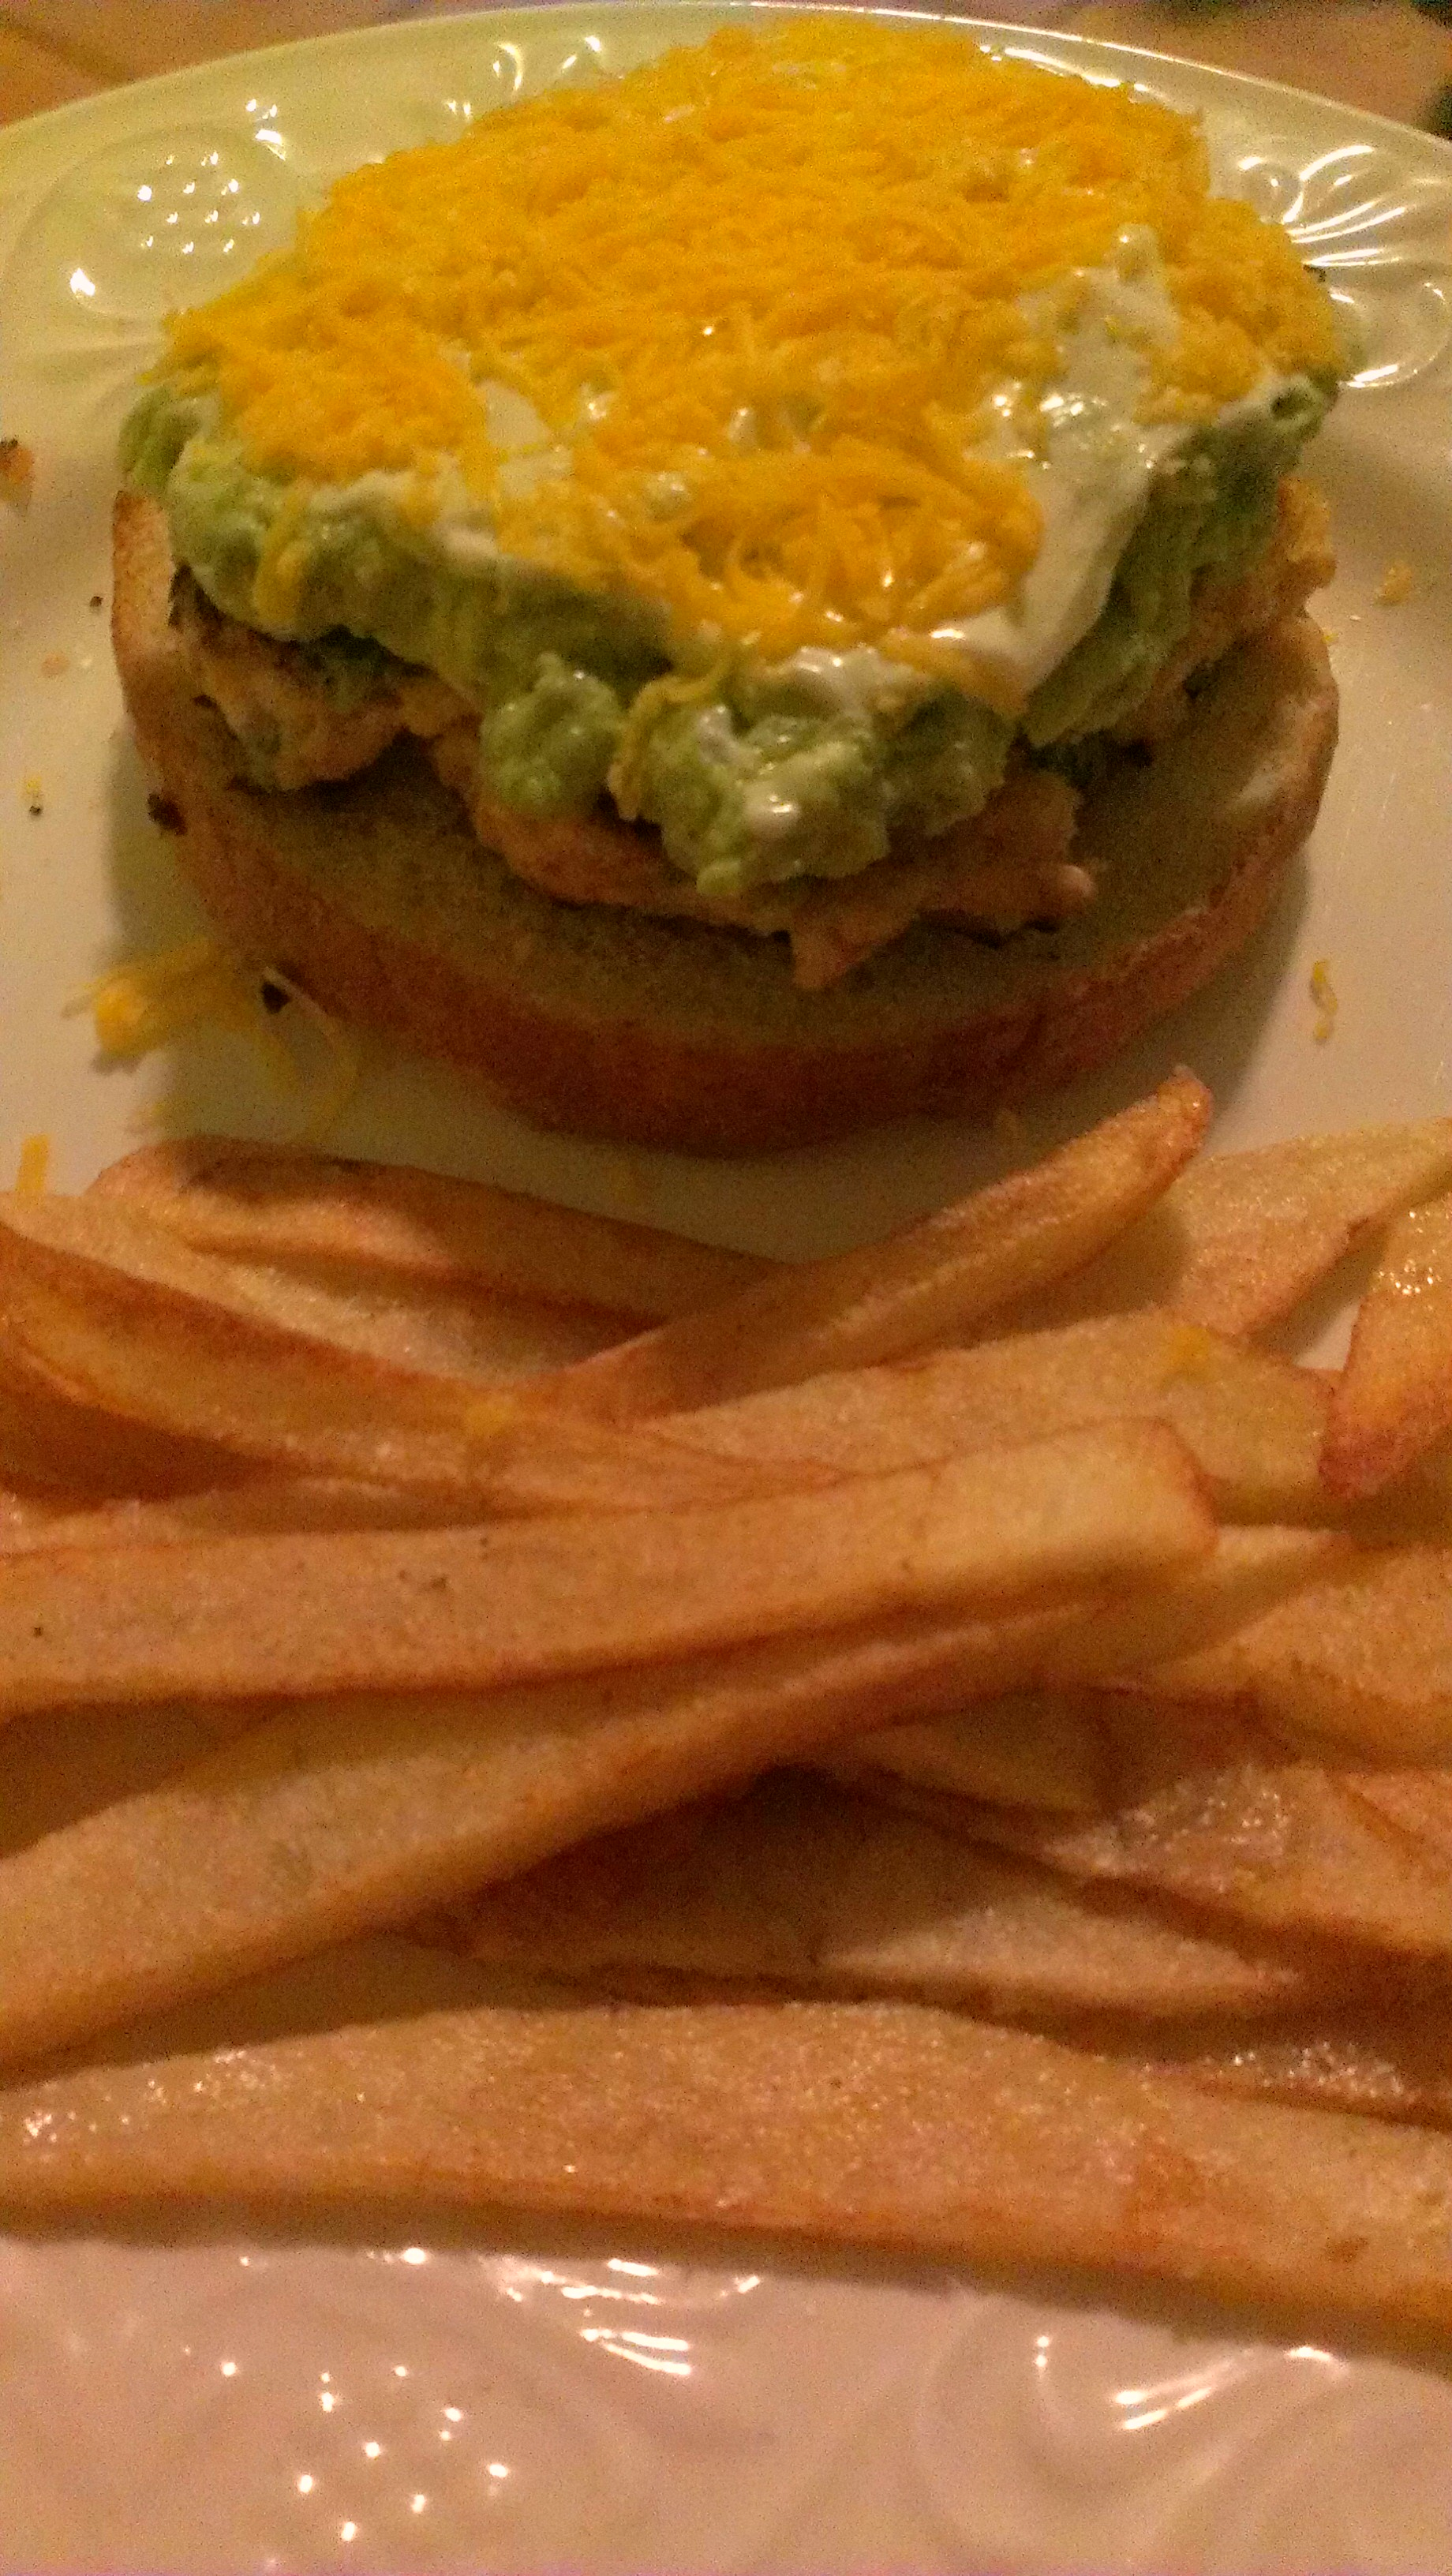 Cheddar jalapeno chicken burgers with guacamole | Cookin'.... and ...